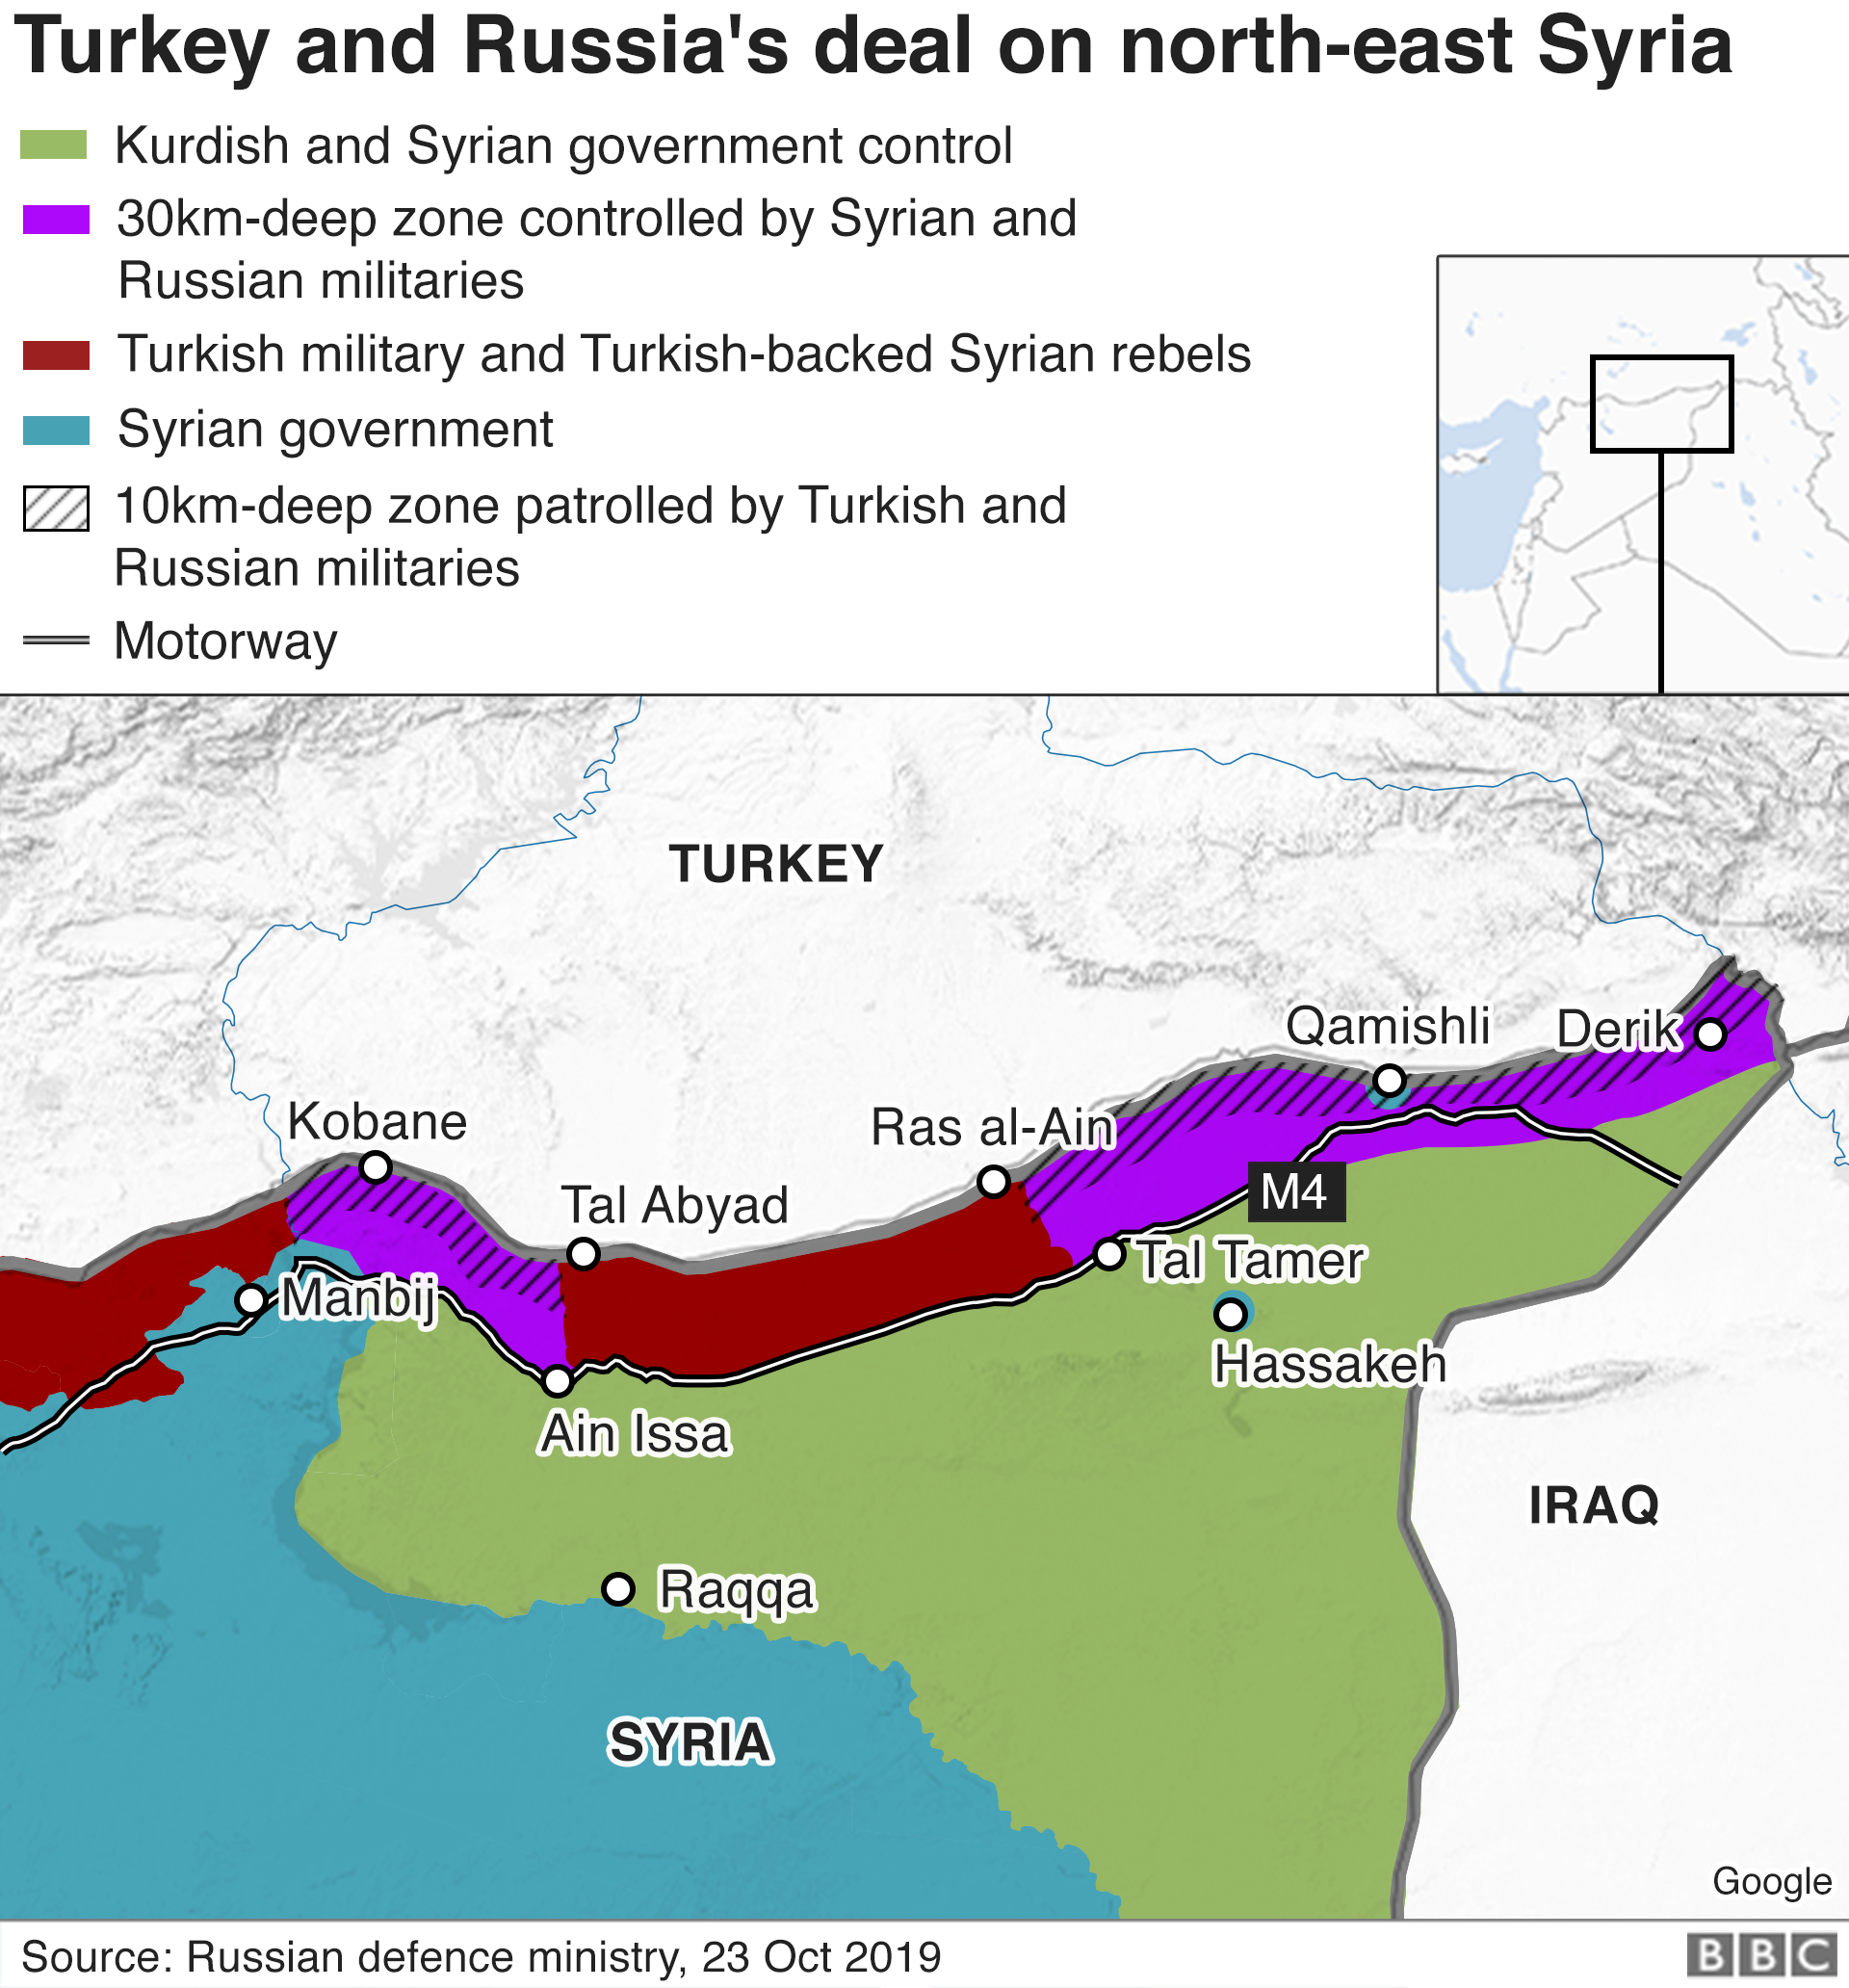 Map showing Turkey and Russia's deal on north-east Syria (23 October 2019)